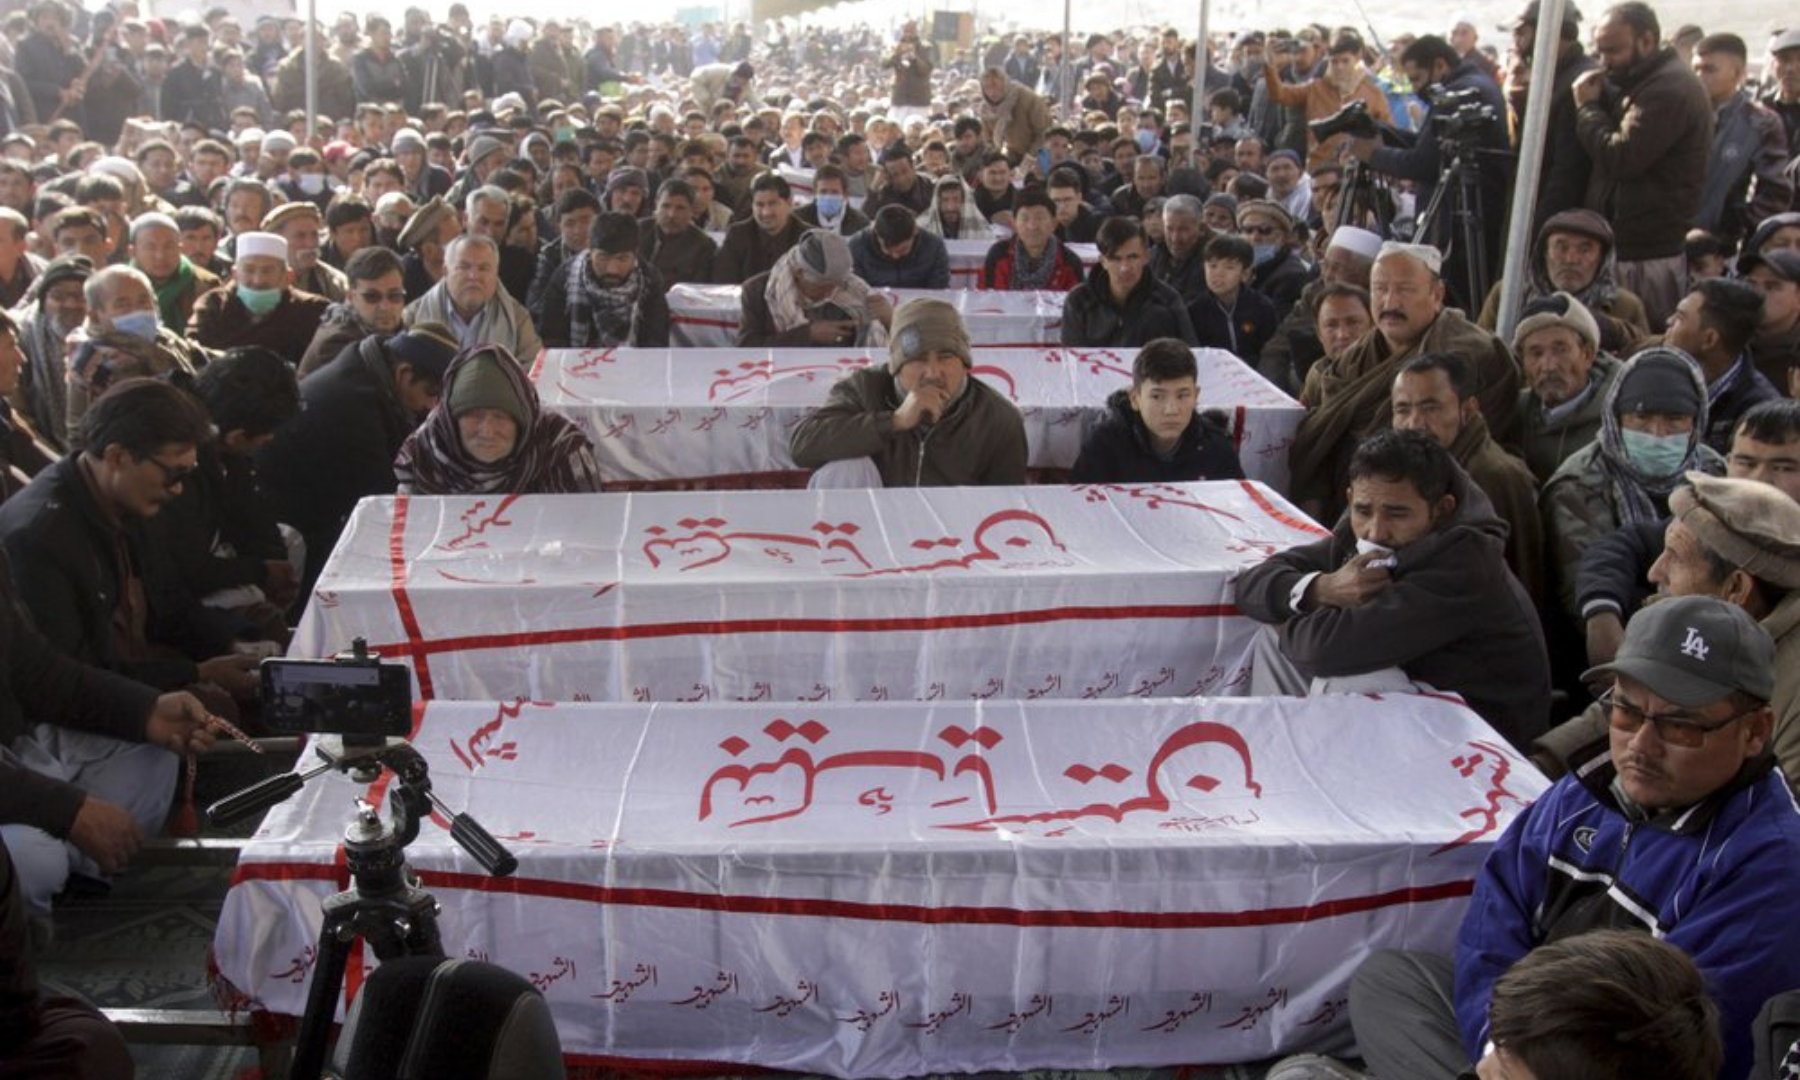 People from the Shia Hazara community gather around the caskets of coal mine workers who were killed by unknown gunmen near the Machh coalfield, during a sit-in protest, in Quetta on Monday. — AP